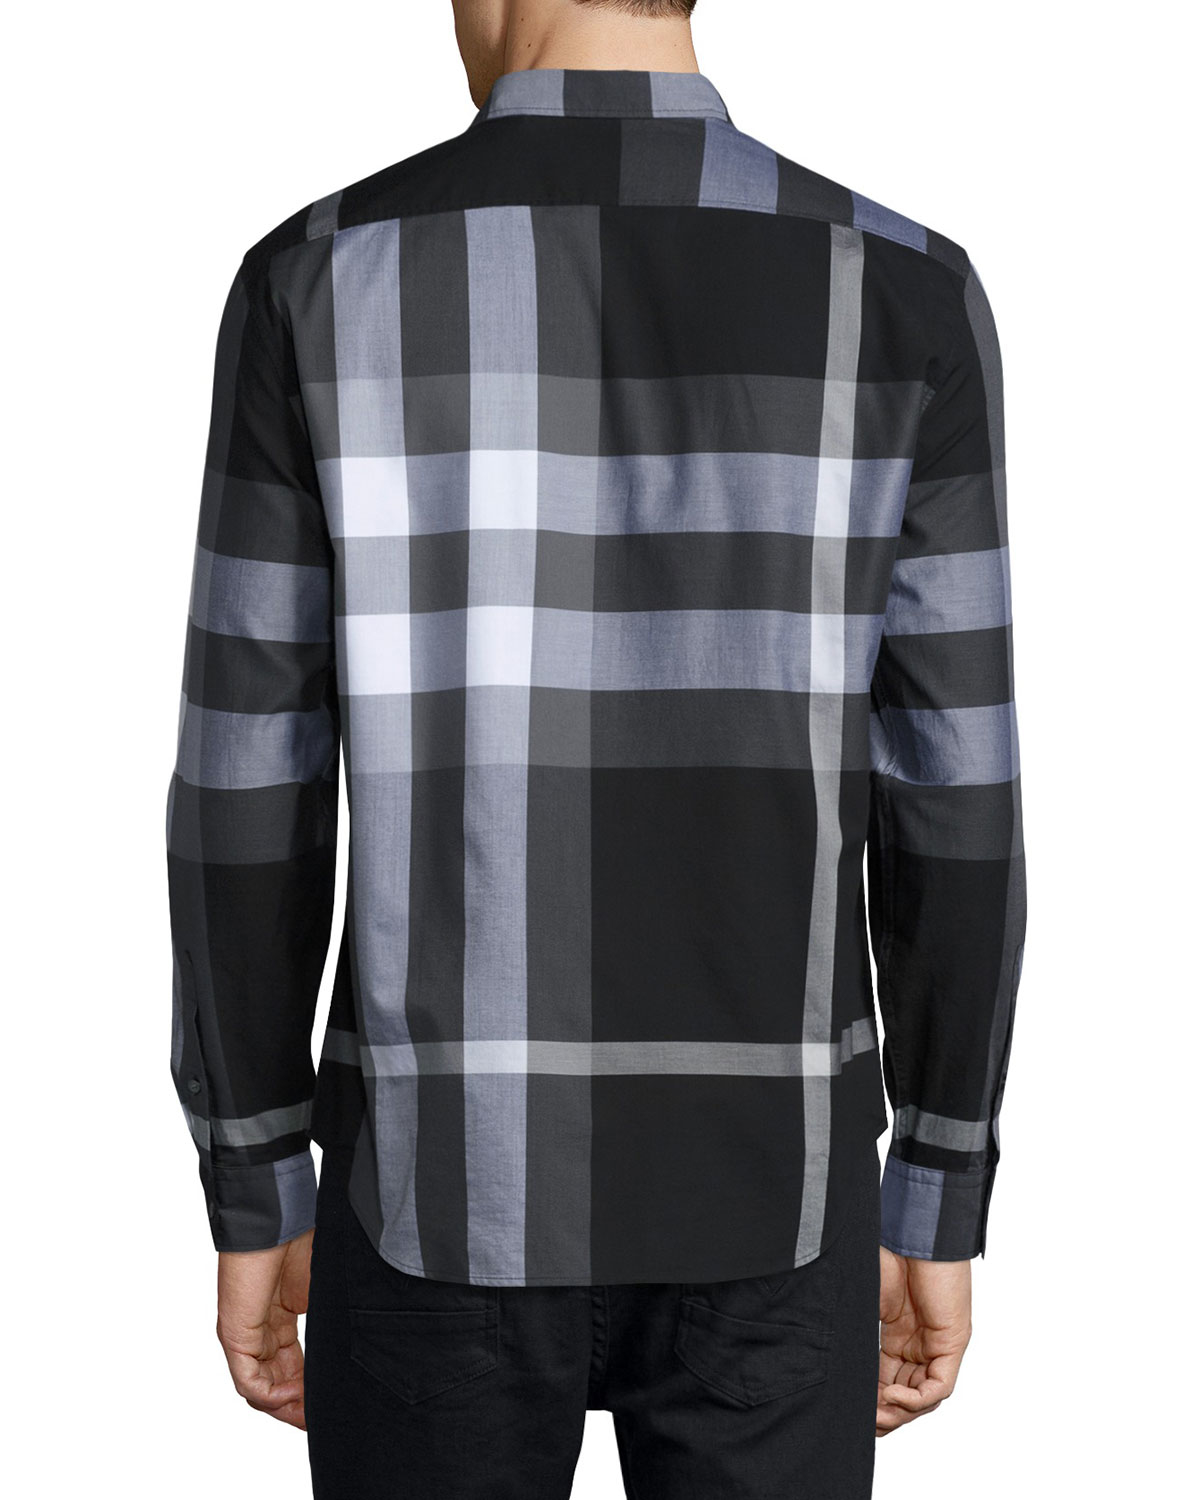 Burberry brit exploded check sport shirt in black for men for Burberry brit checked shirt